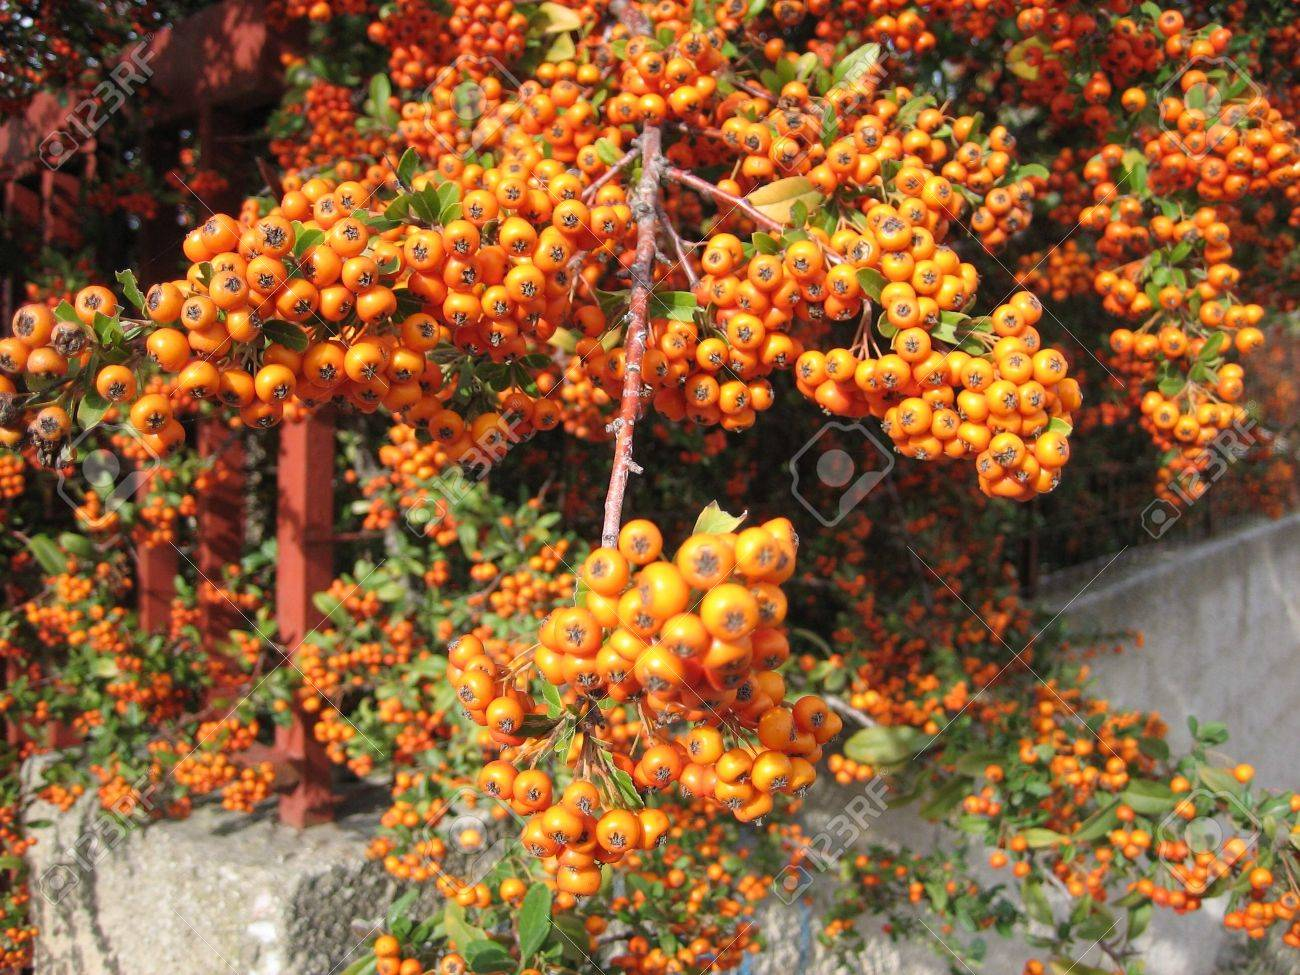 Beautiful fruit pictures - Beautiful Fruit Bearing Tree In A Remote Area Of Greece Stock Photo 21199122